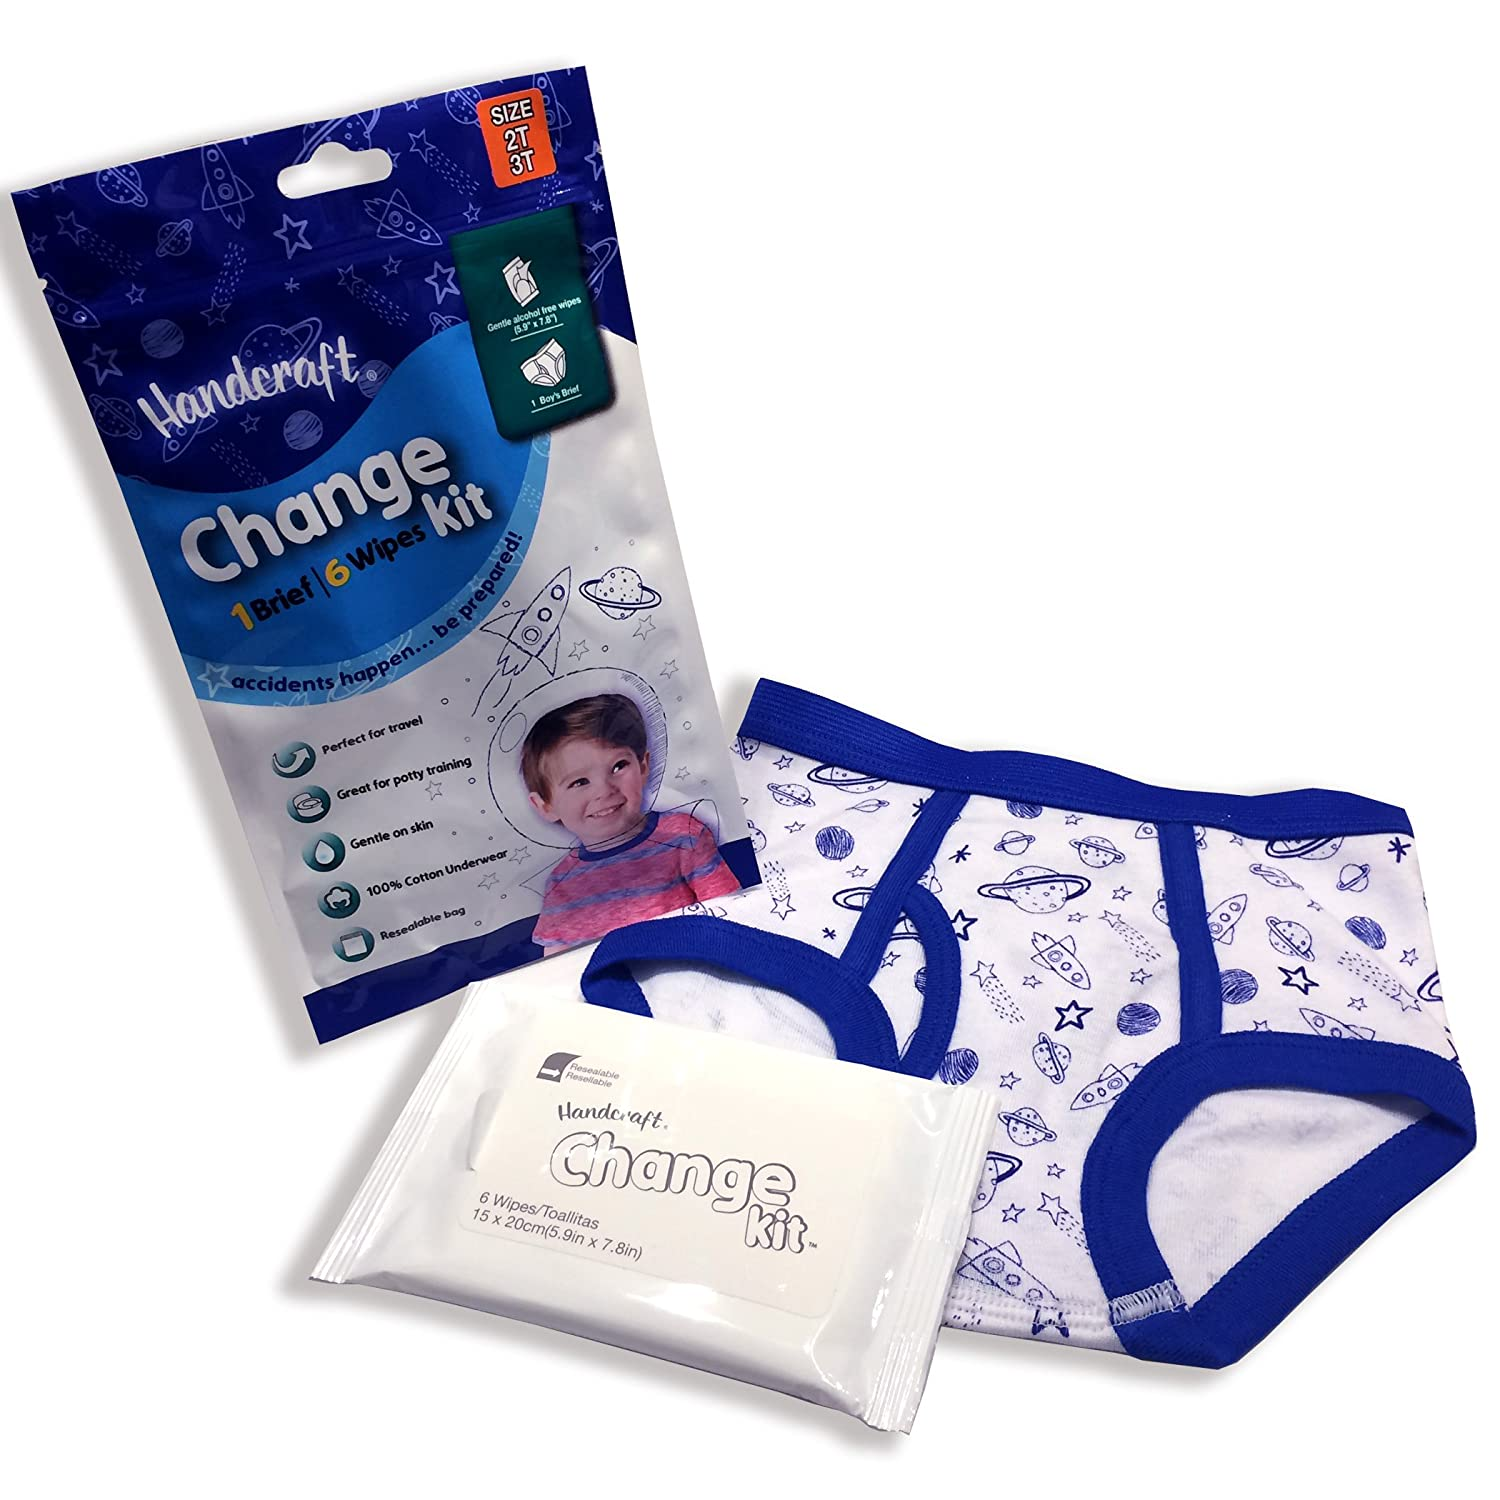 Amazon.com: Handcraft Kids Toddler 3-Pack Emergency Kit with Underwear + Wipes for Boy Girl: Clothing